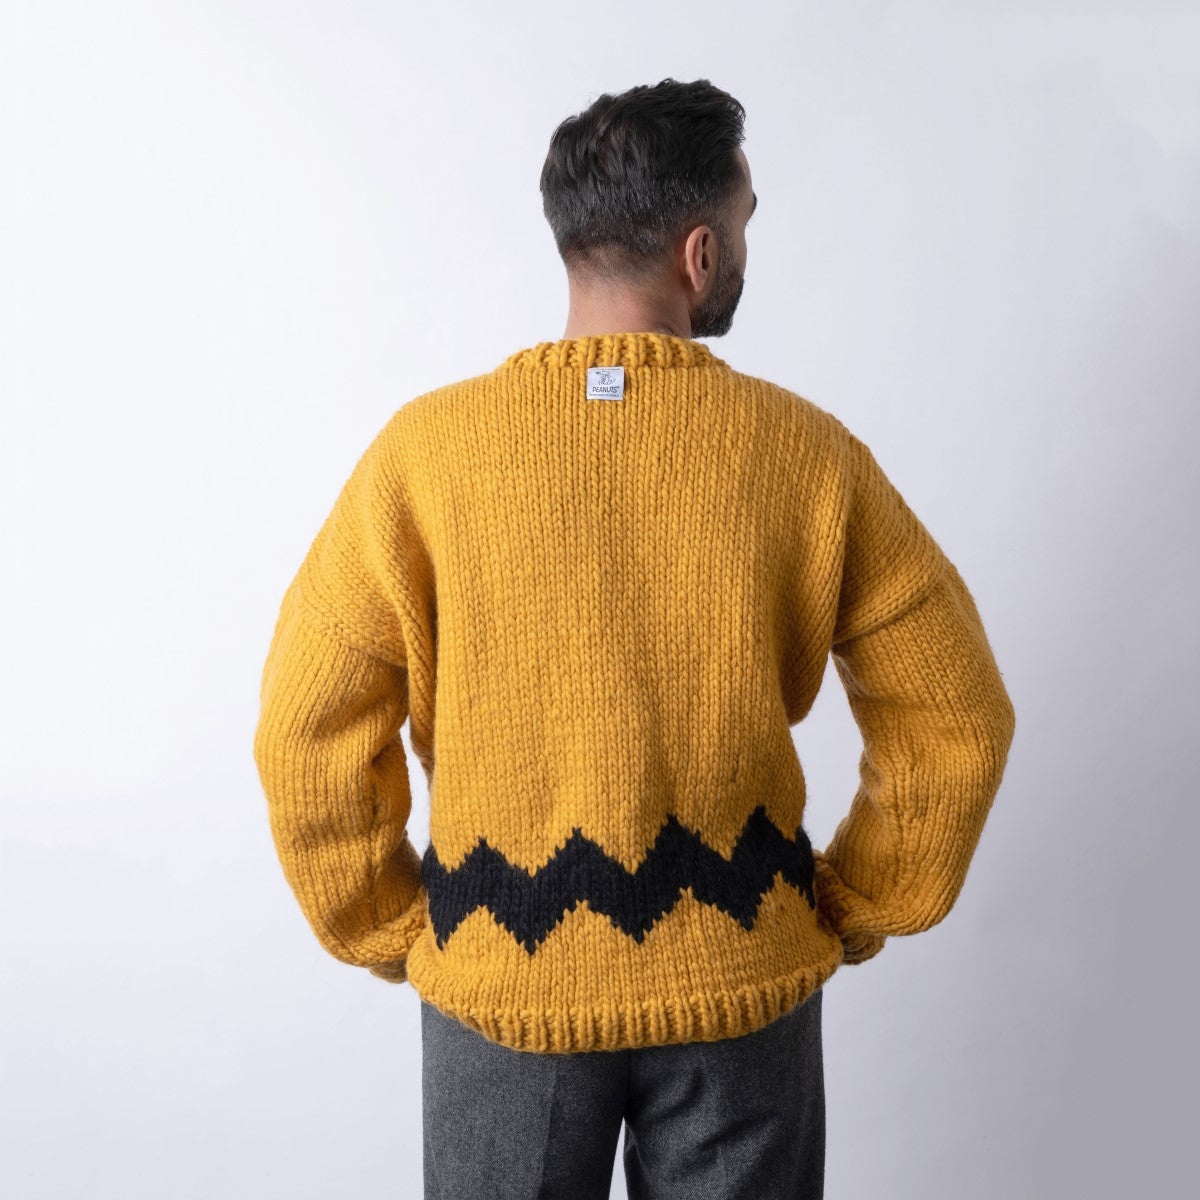 Peanuts: Charlie Brown Men's Sweater Knitting Kit